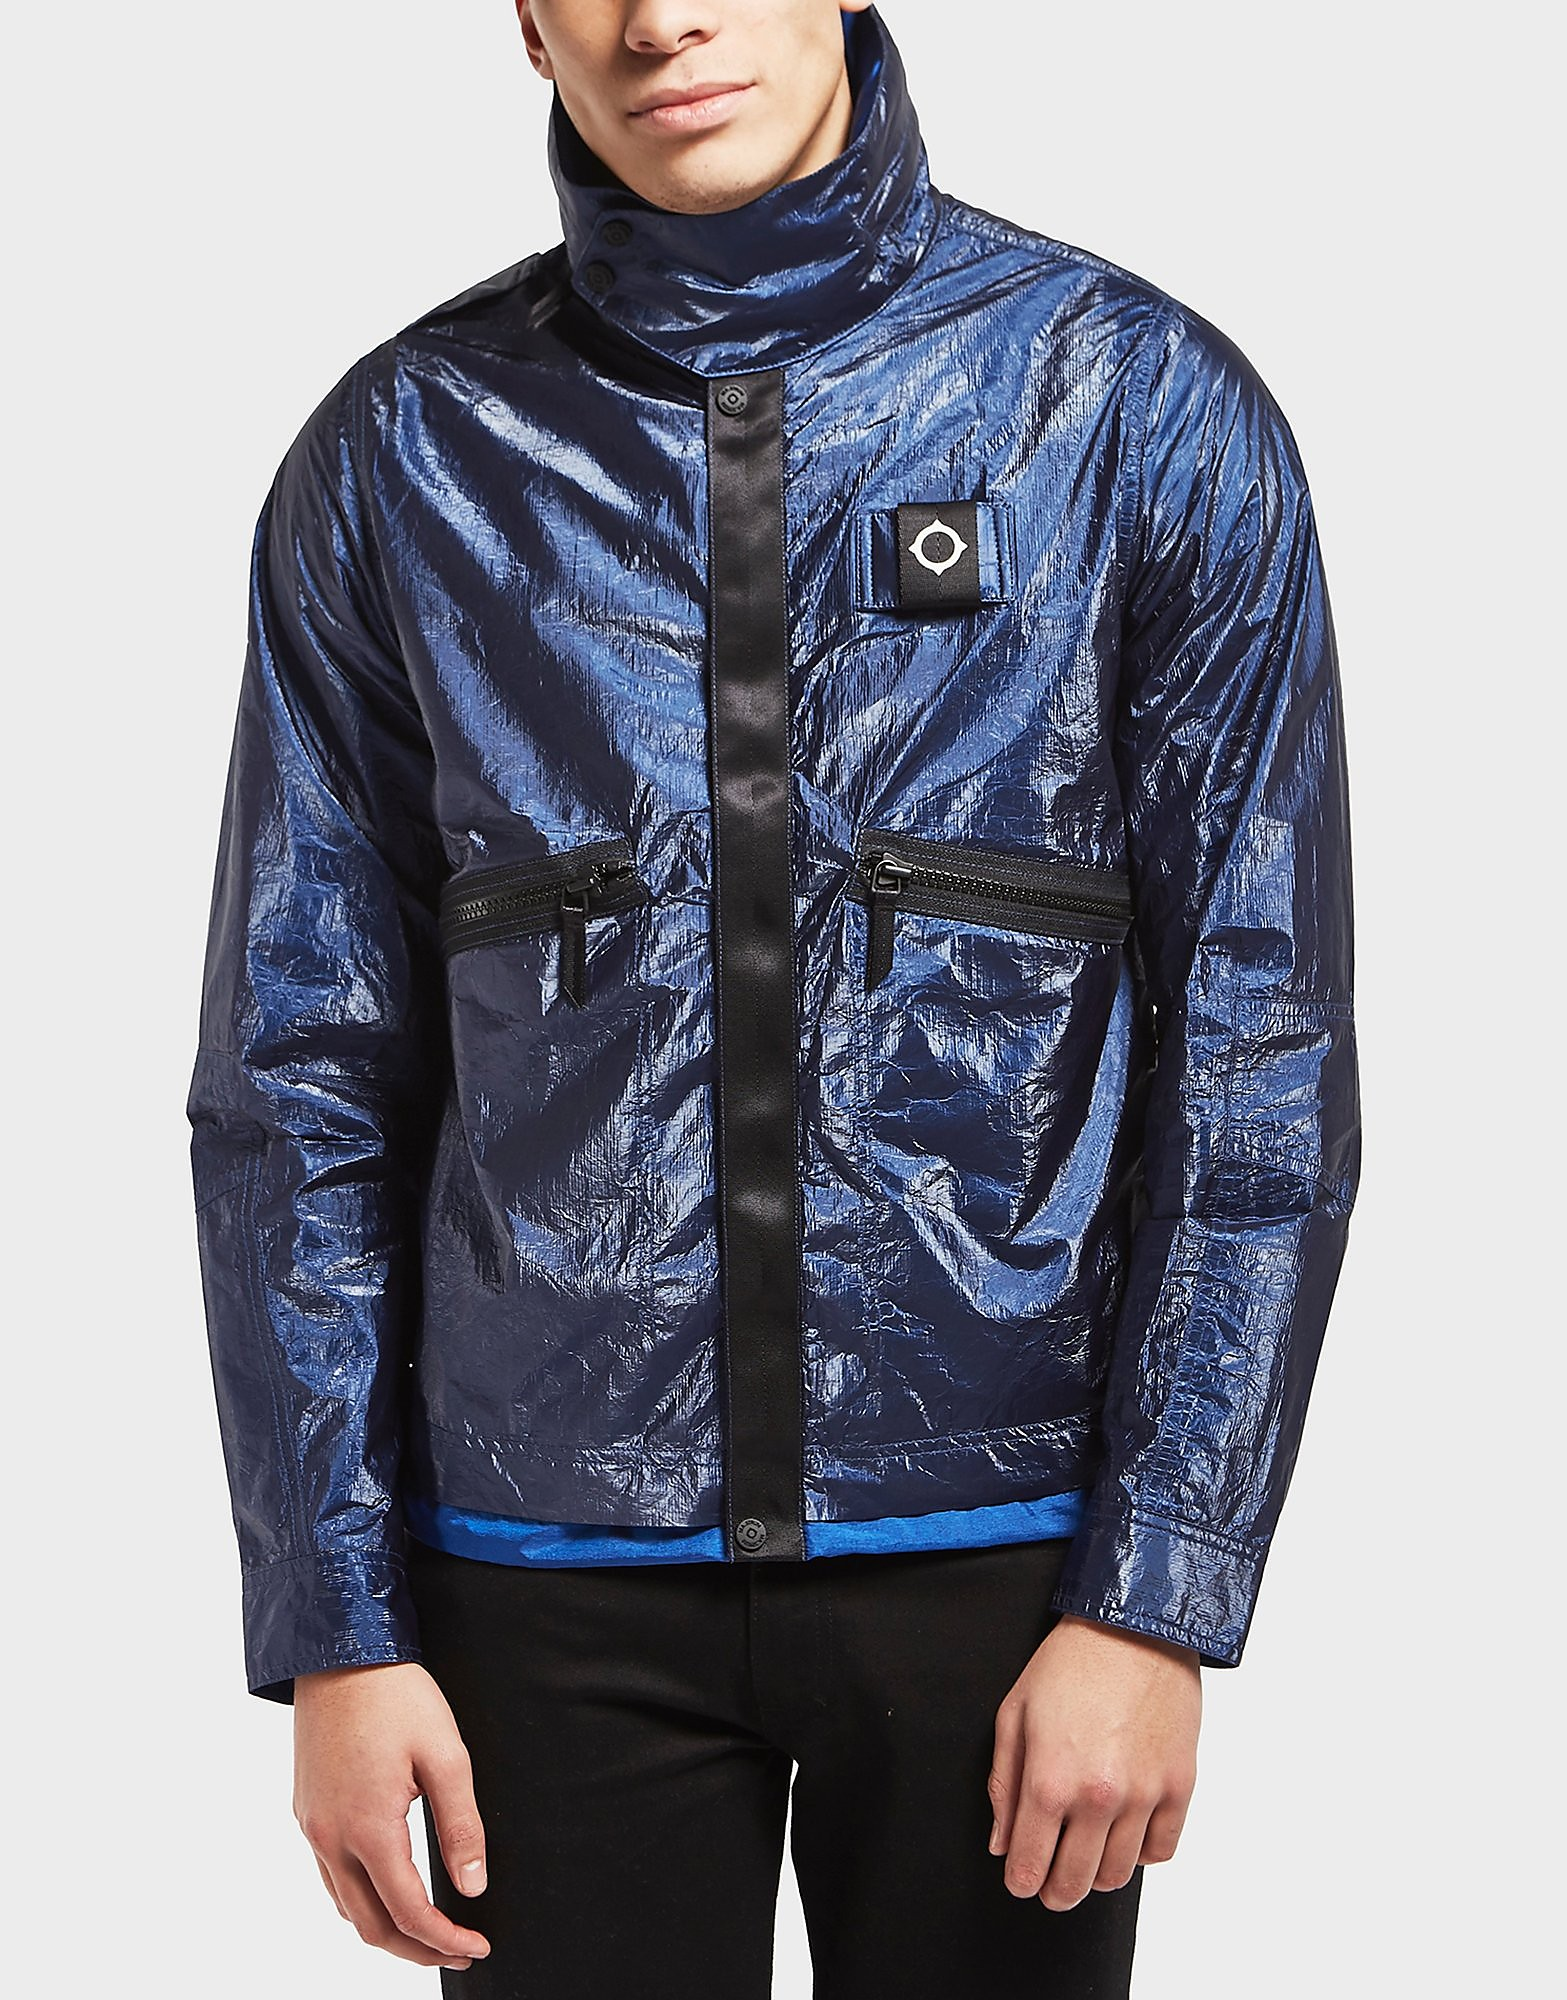 MA STRUM Atlas Flash Jacket